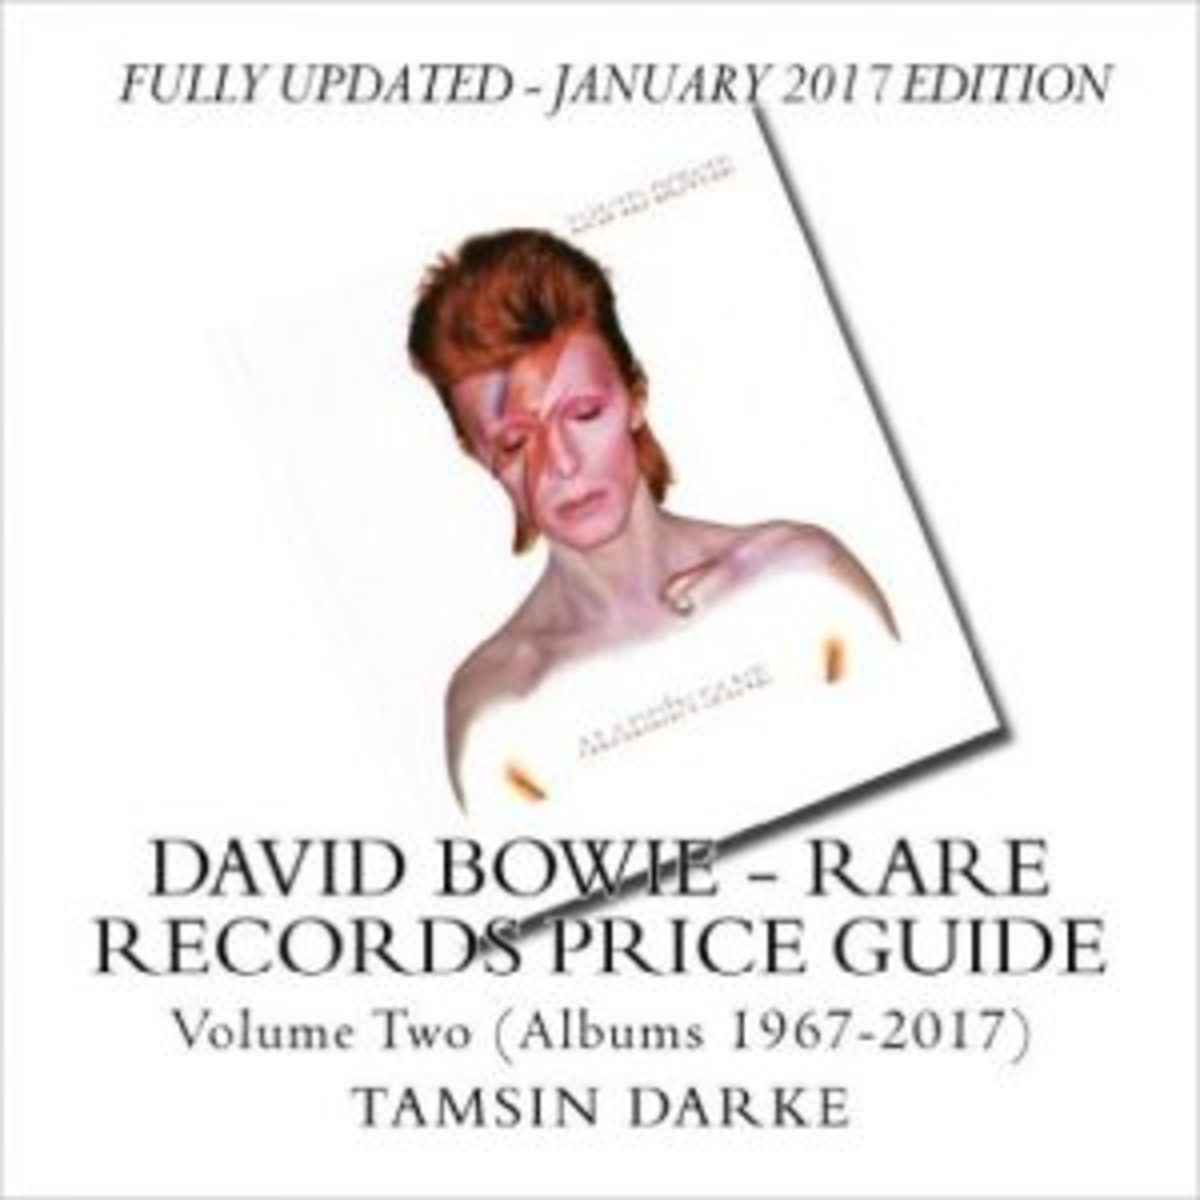 bowie-lps-price-guide